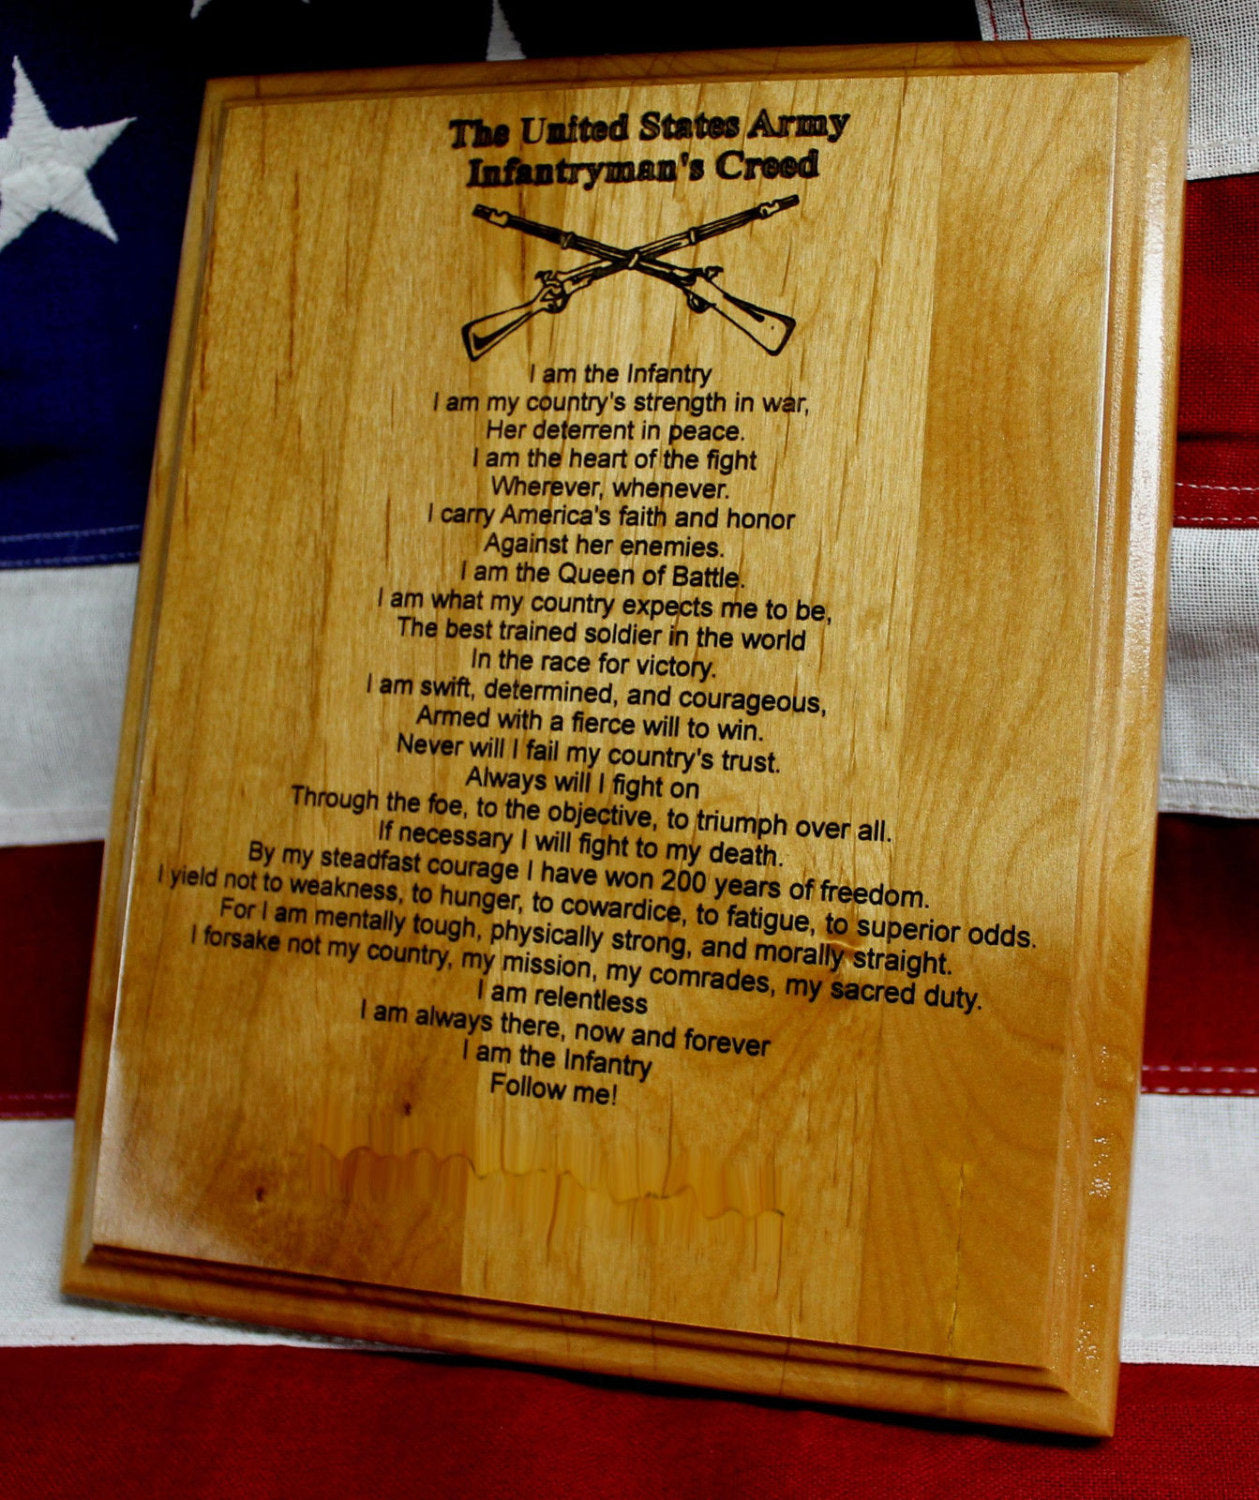 US ARMY Infantryman's Creed Plaque, infantry crossed rifles